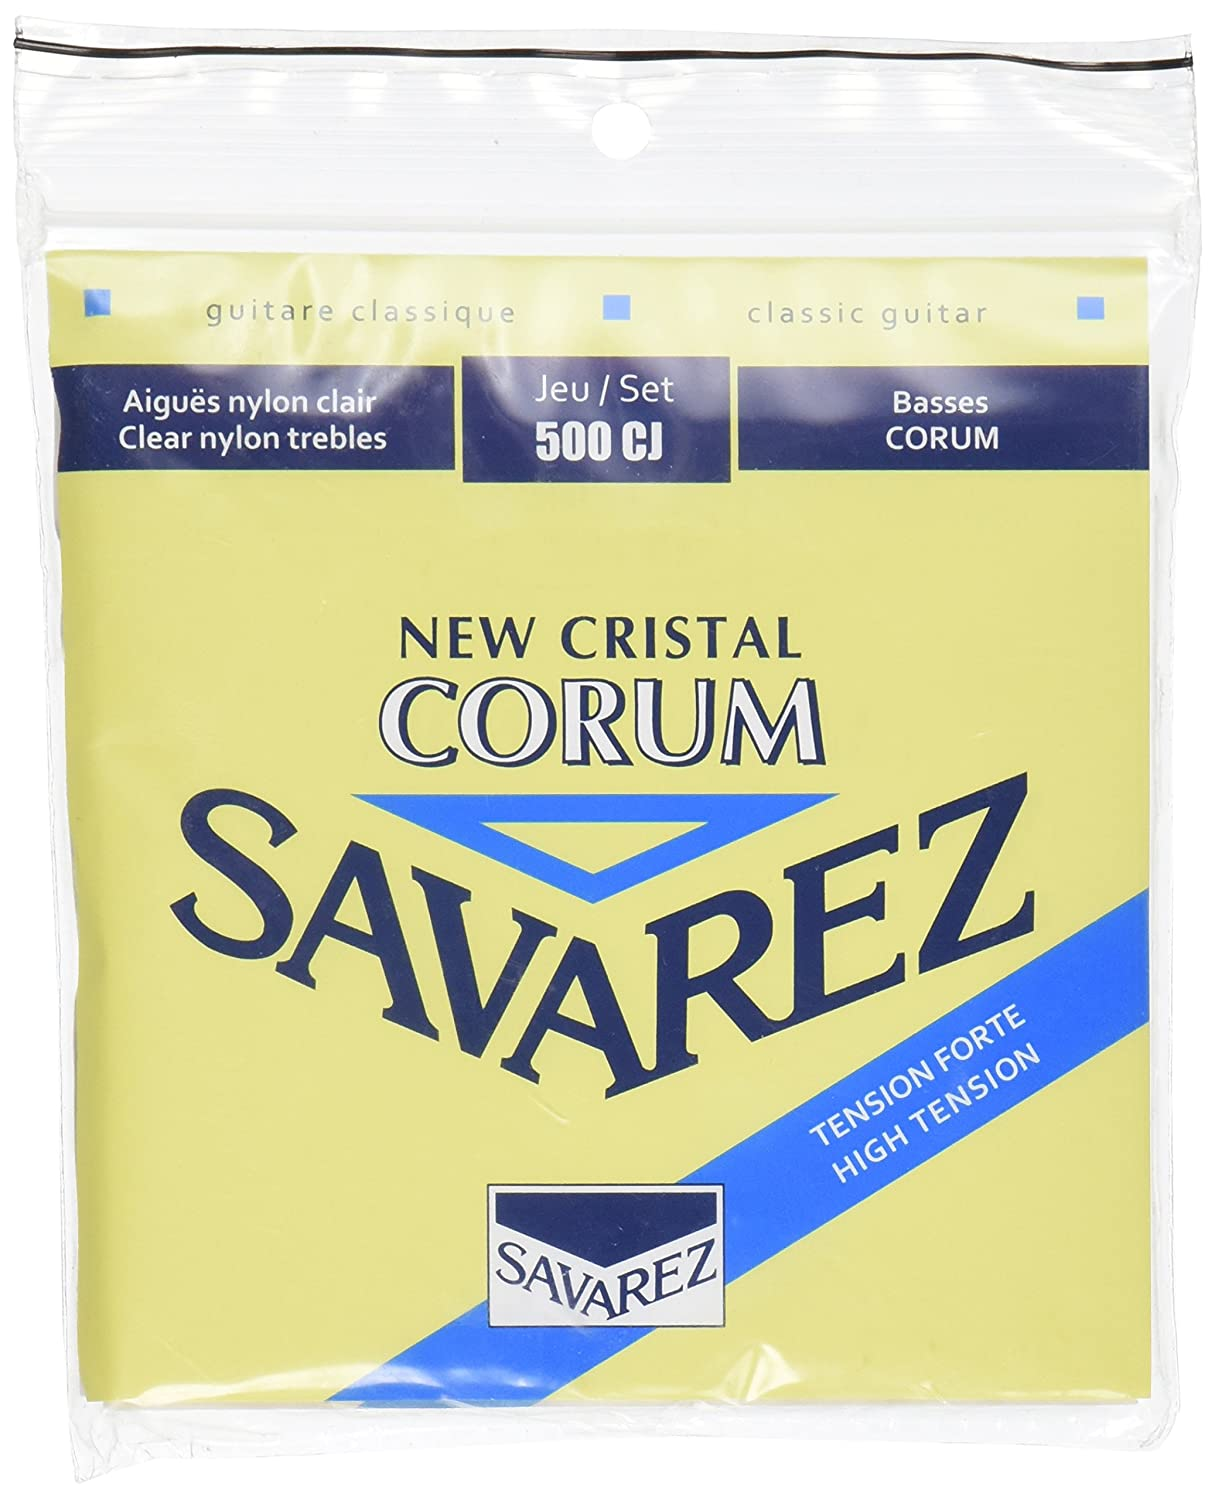 Savarez 500CJ Corum Cristal Classical Guitar Strings, High Tension, Blue Card Savarez Strings